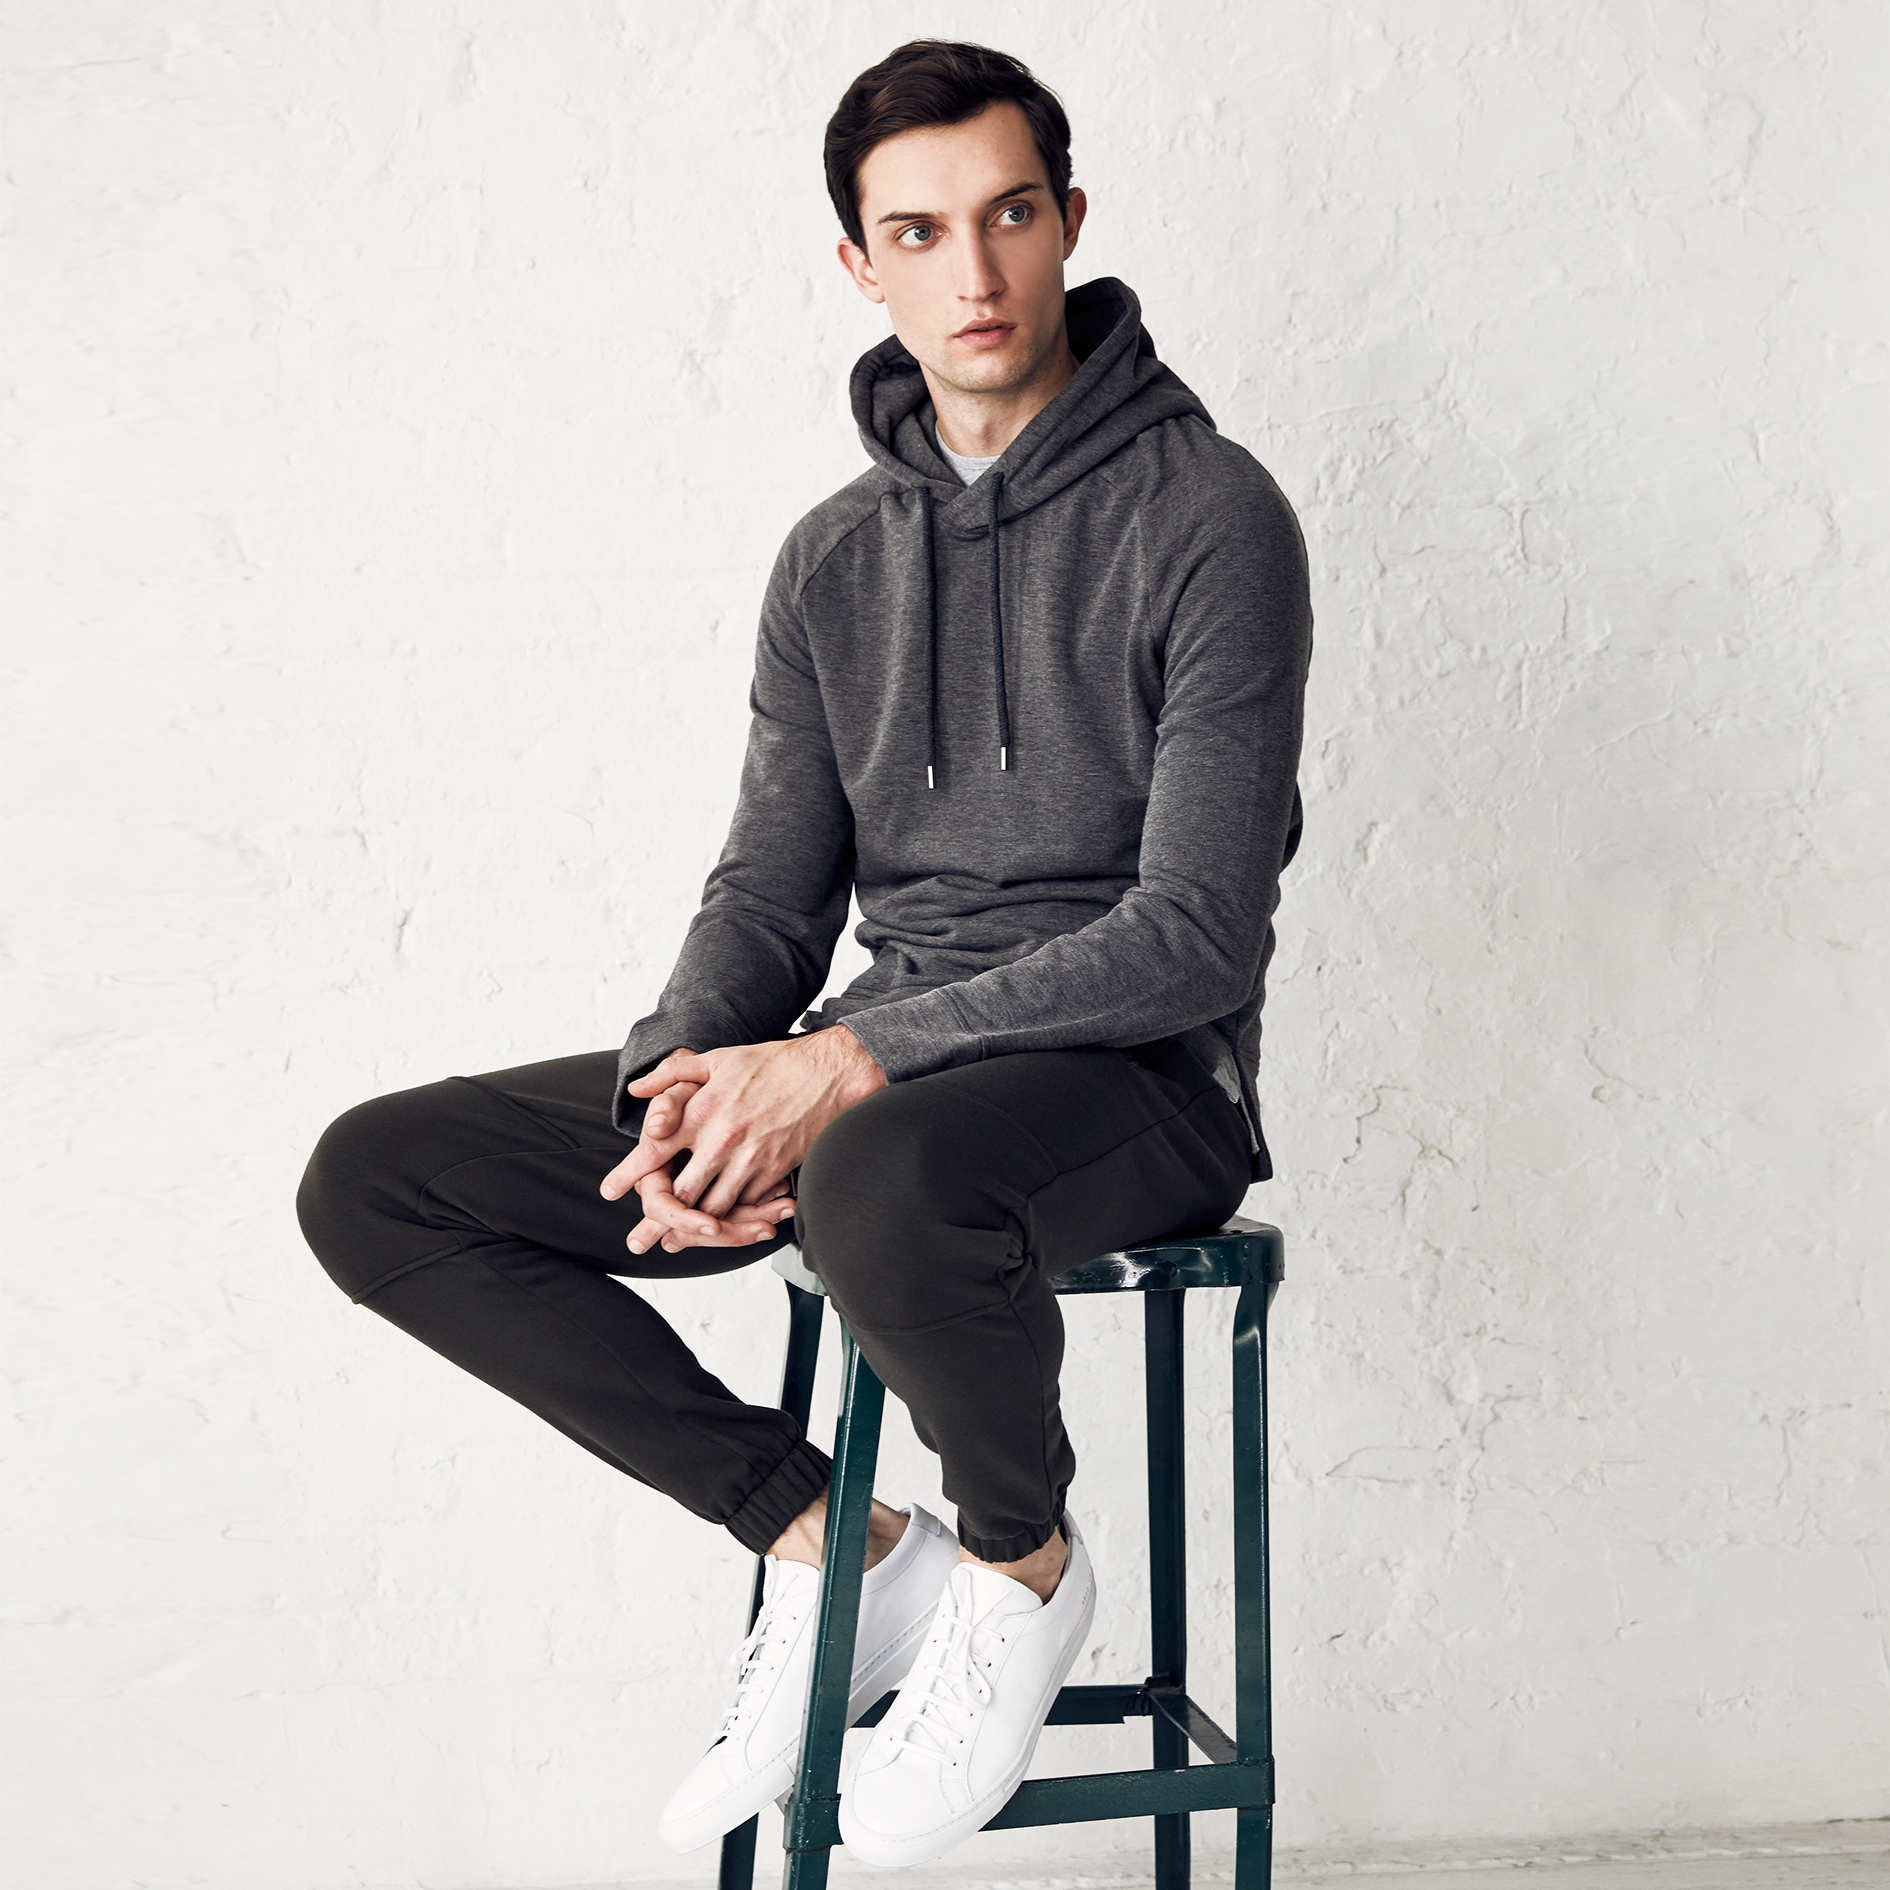 the softest fabric - made with our signature brushed back fleece, Mason Hood Pullover offers the softest hand feel with the ultimate comfort. And it is the most perfectly designed hood pullover you will ever own in your wardrobe.